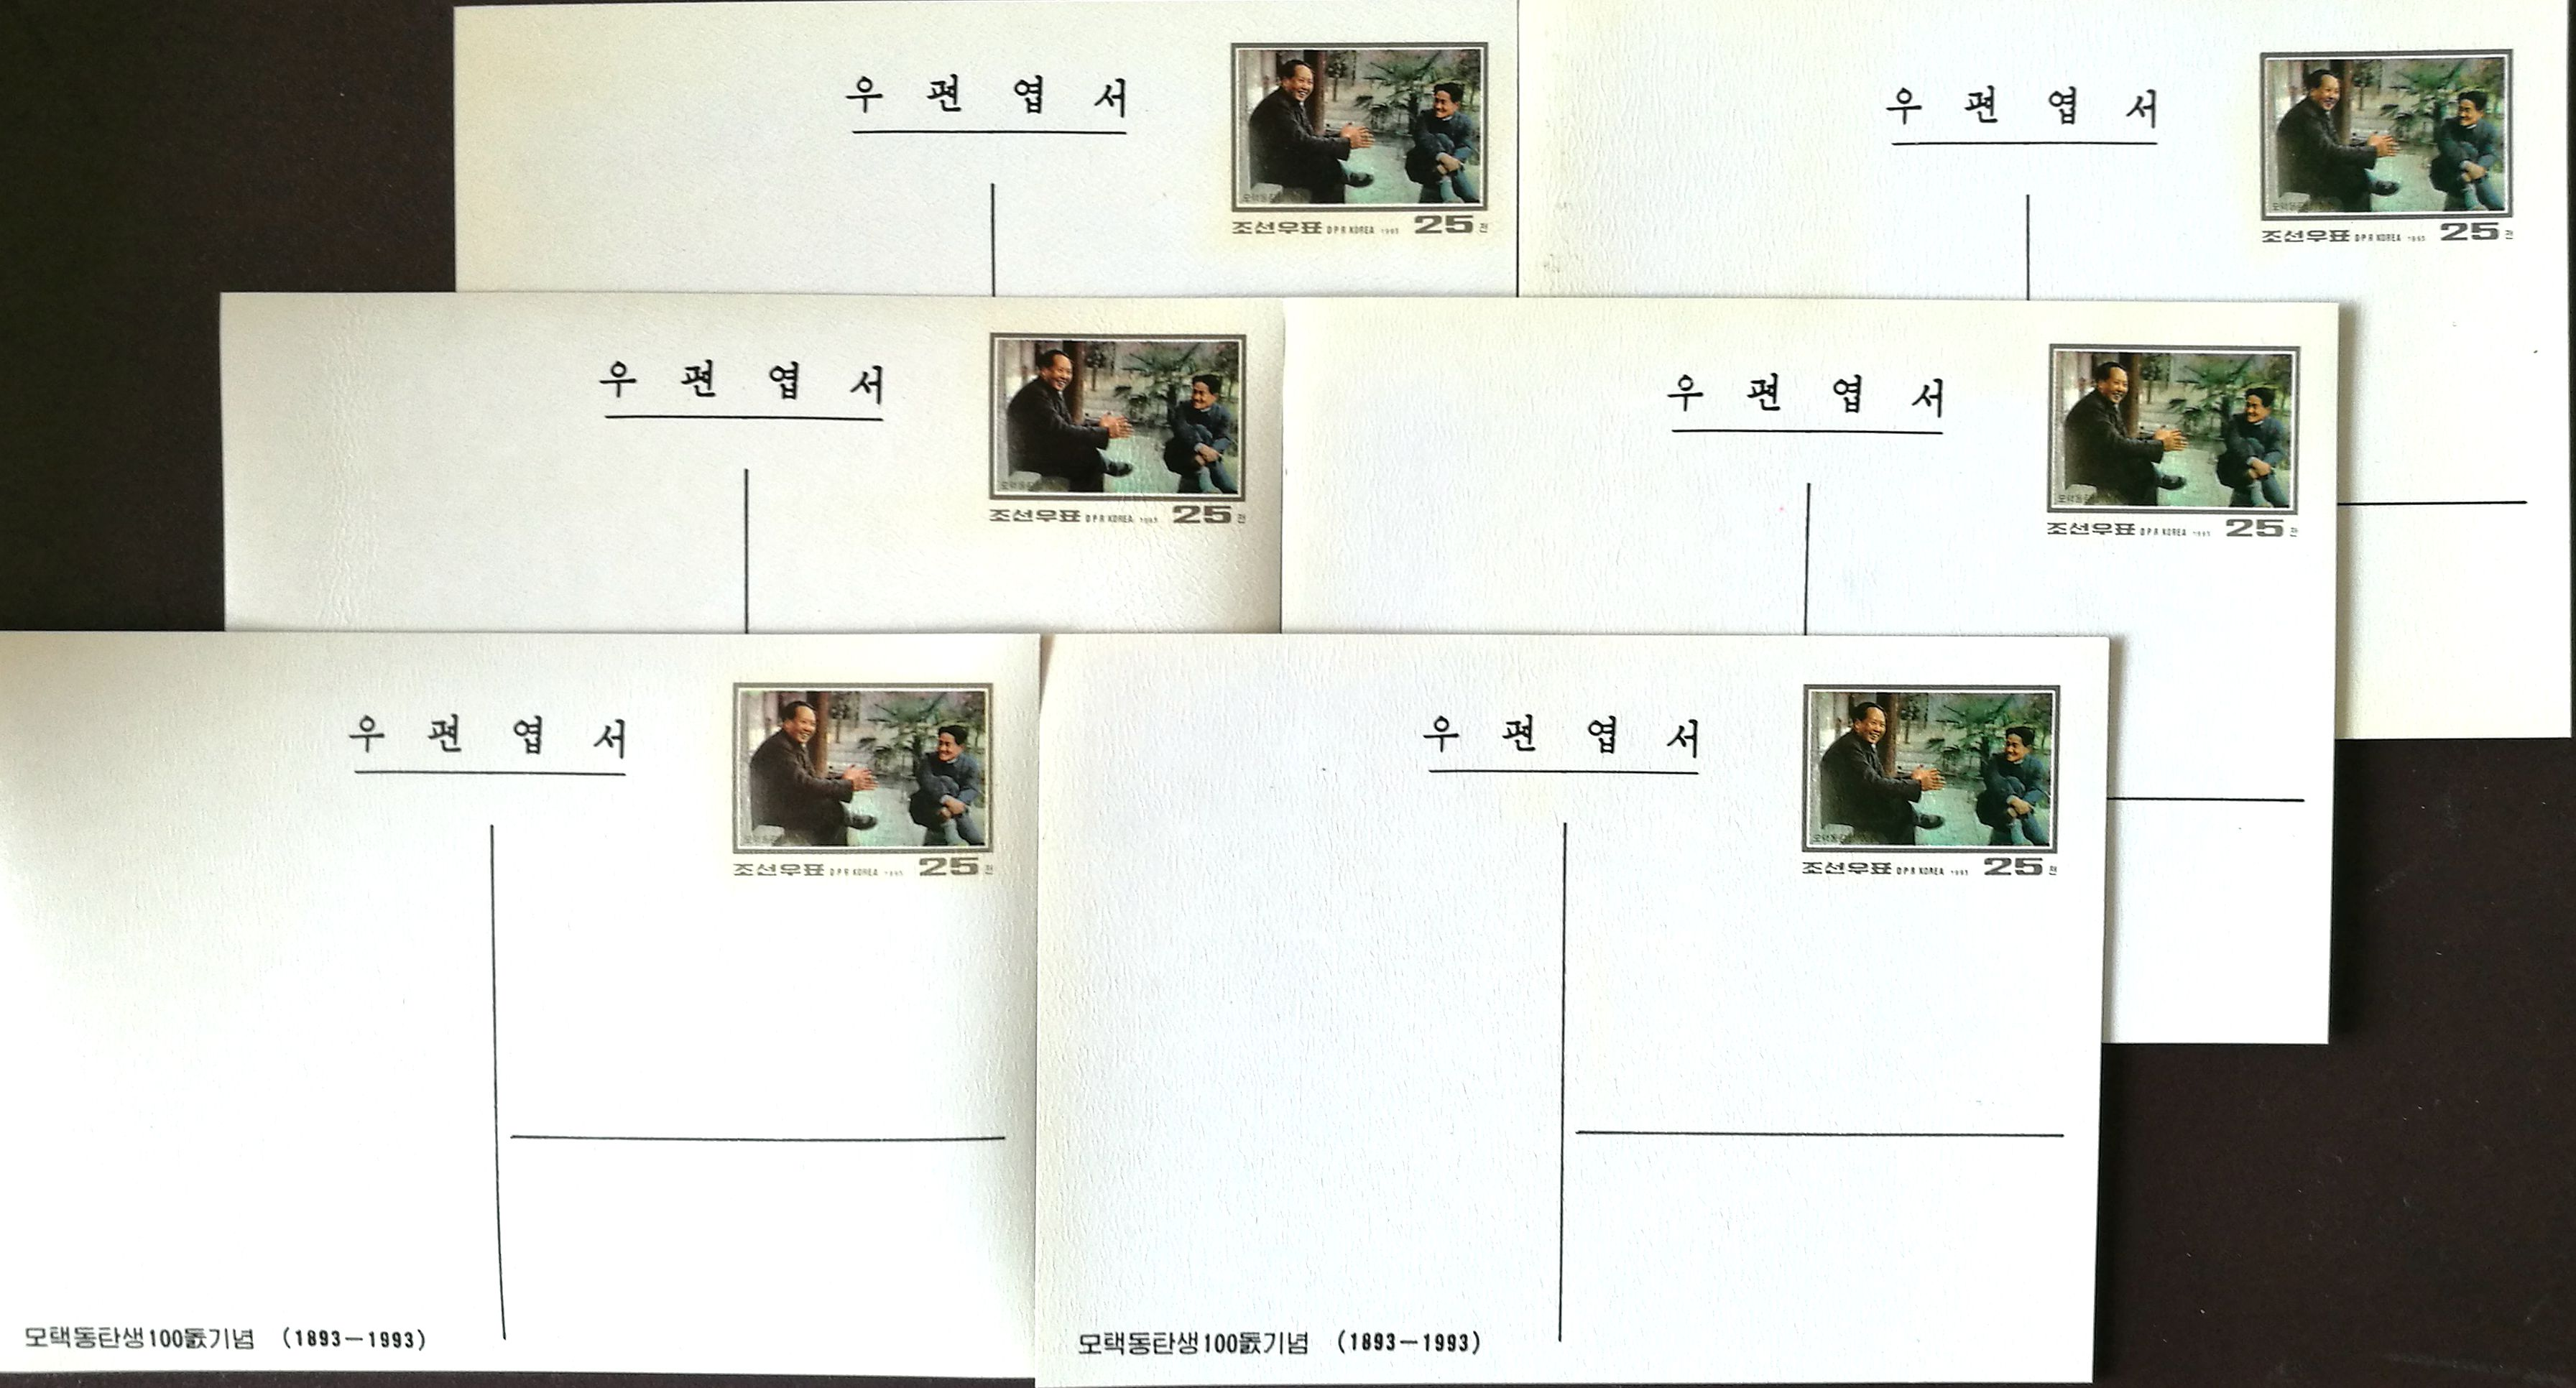 L9332, Korea 1993 Mao Zedong (Three Dimensional Postal Cards, 3D), 6 Pcs